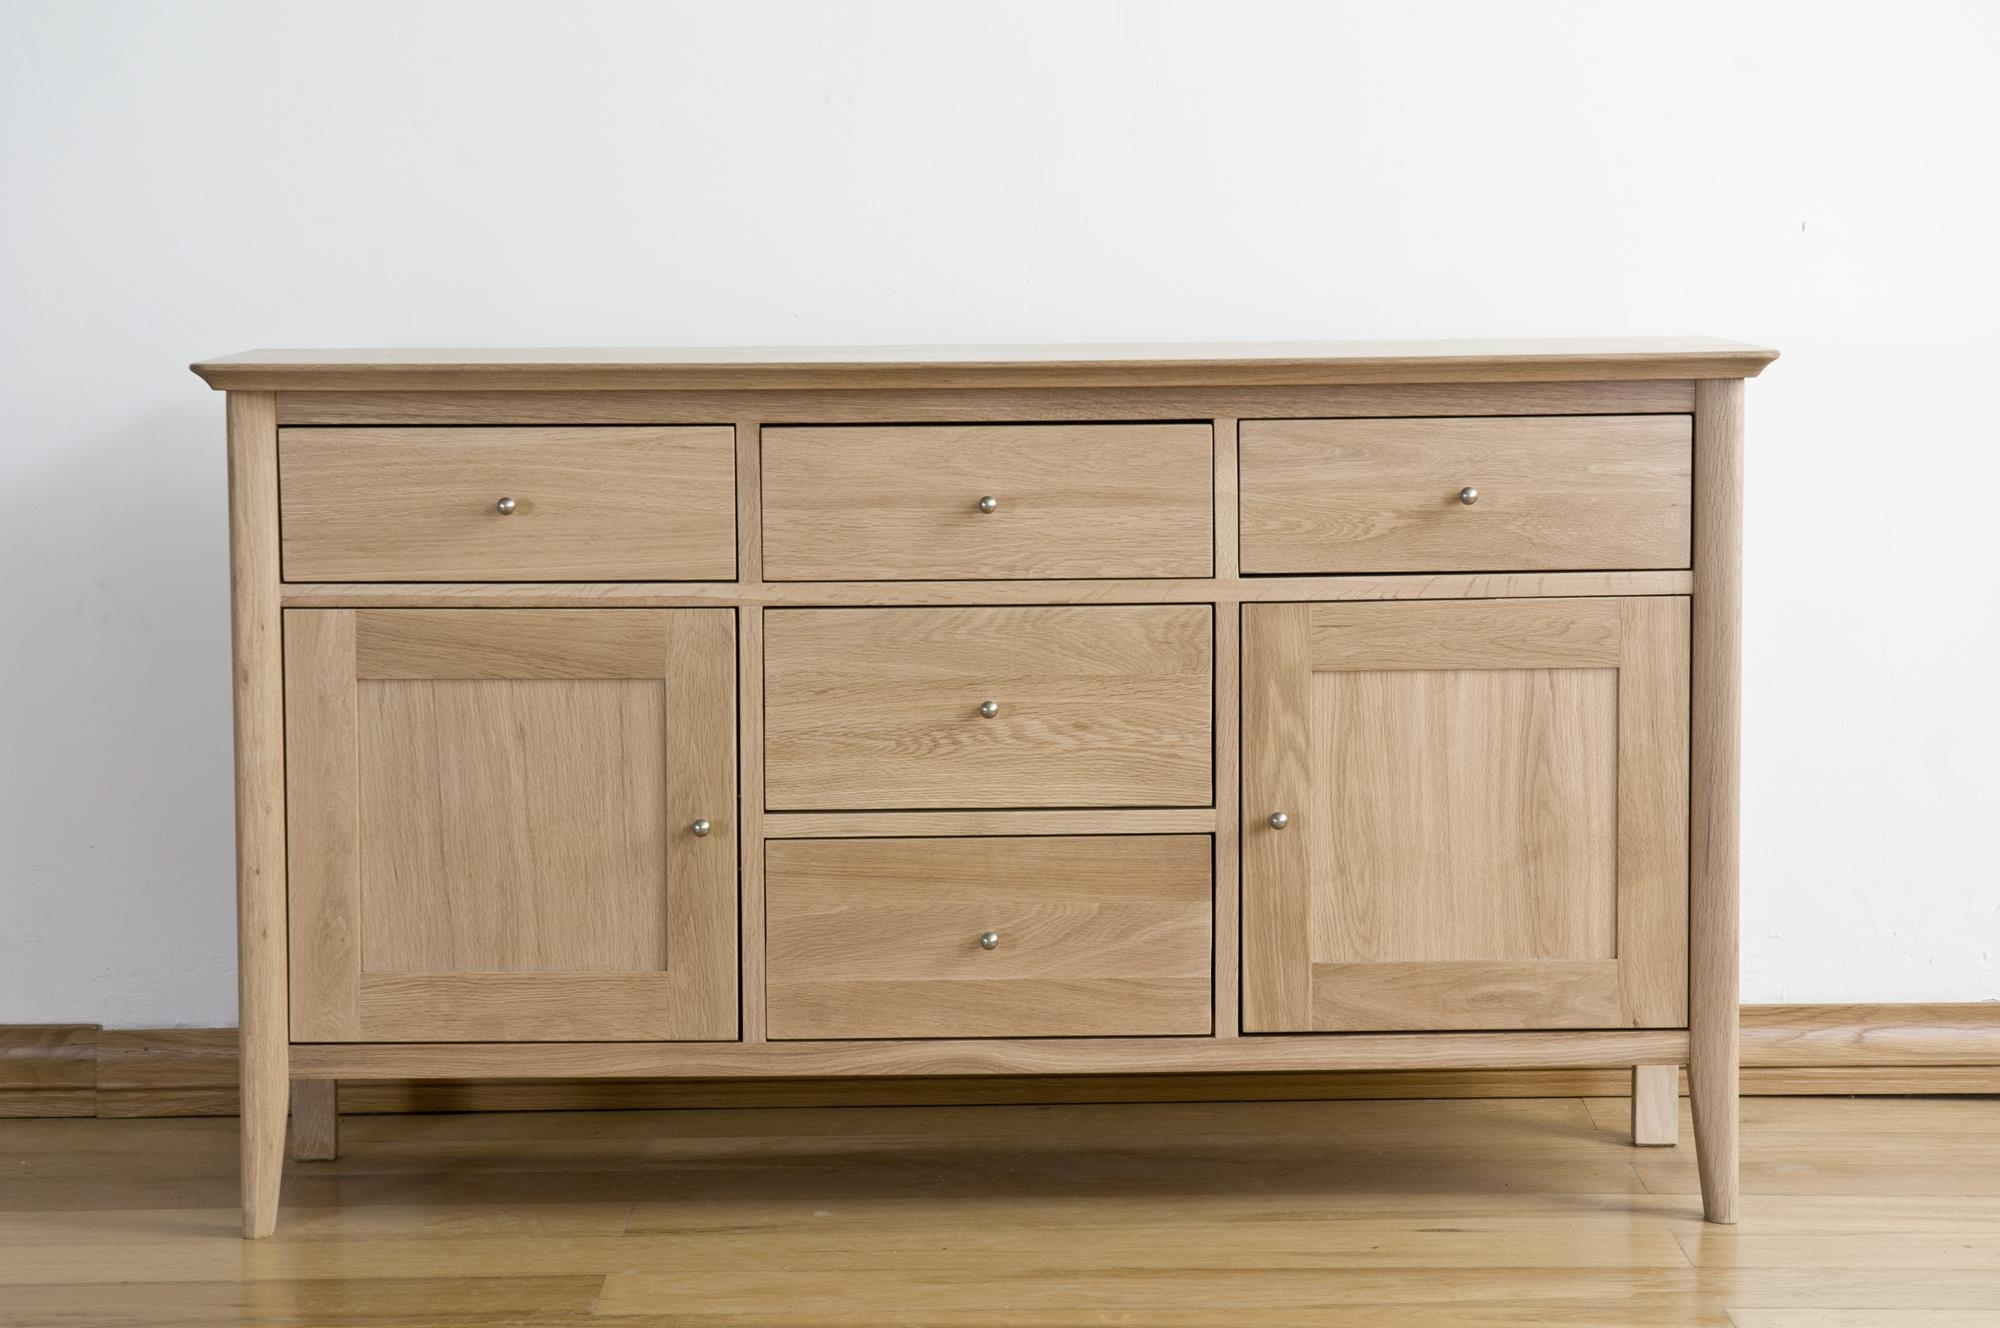 Sorrento Solid Oak Sideboard - Large Medium 2 Door 5 Drawer